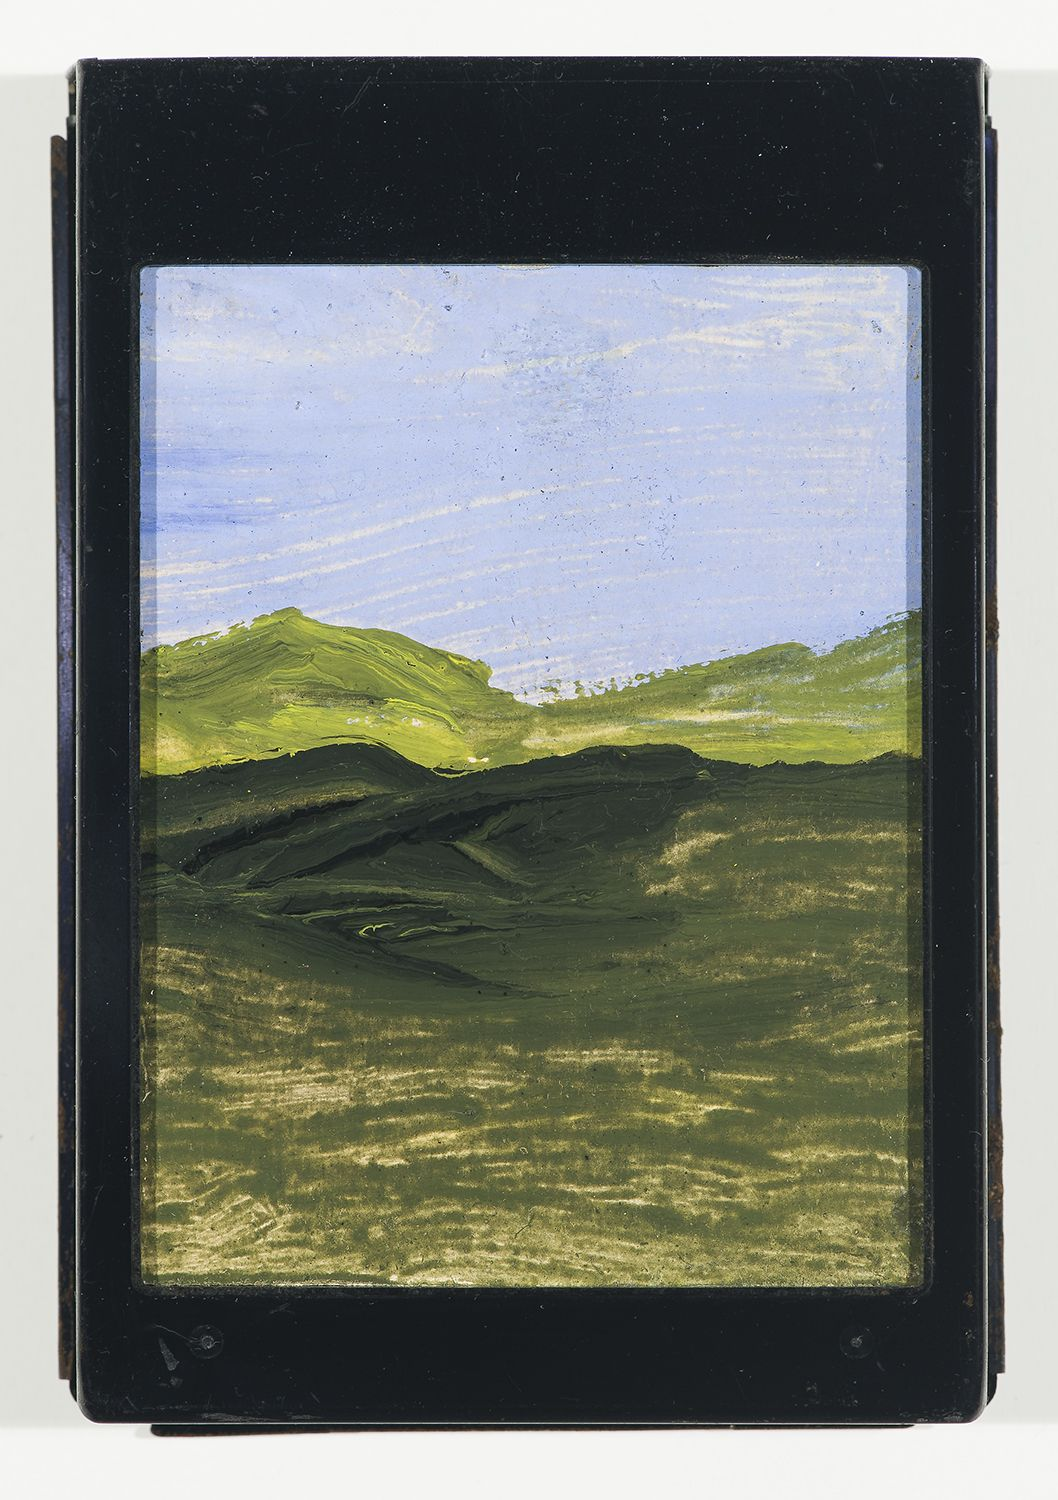 Frank Walter, Landscape, Green Hills, watercolor and oil on polaroid box cover w/ metal cartridge, 5 1/4 x 3 3/4 inches